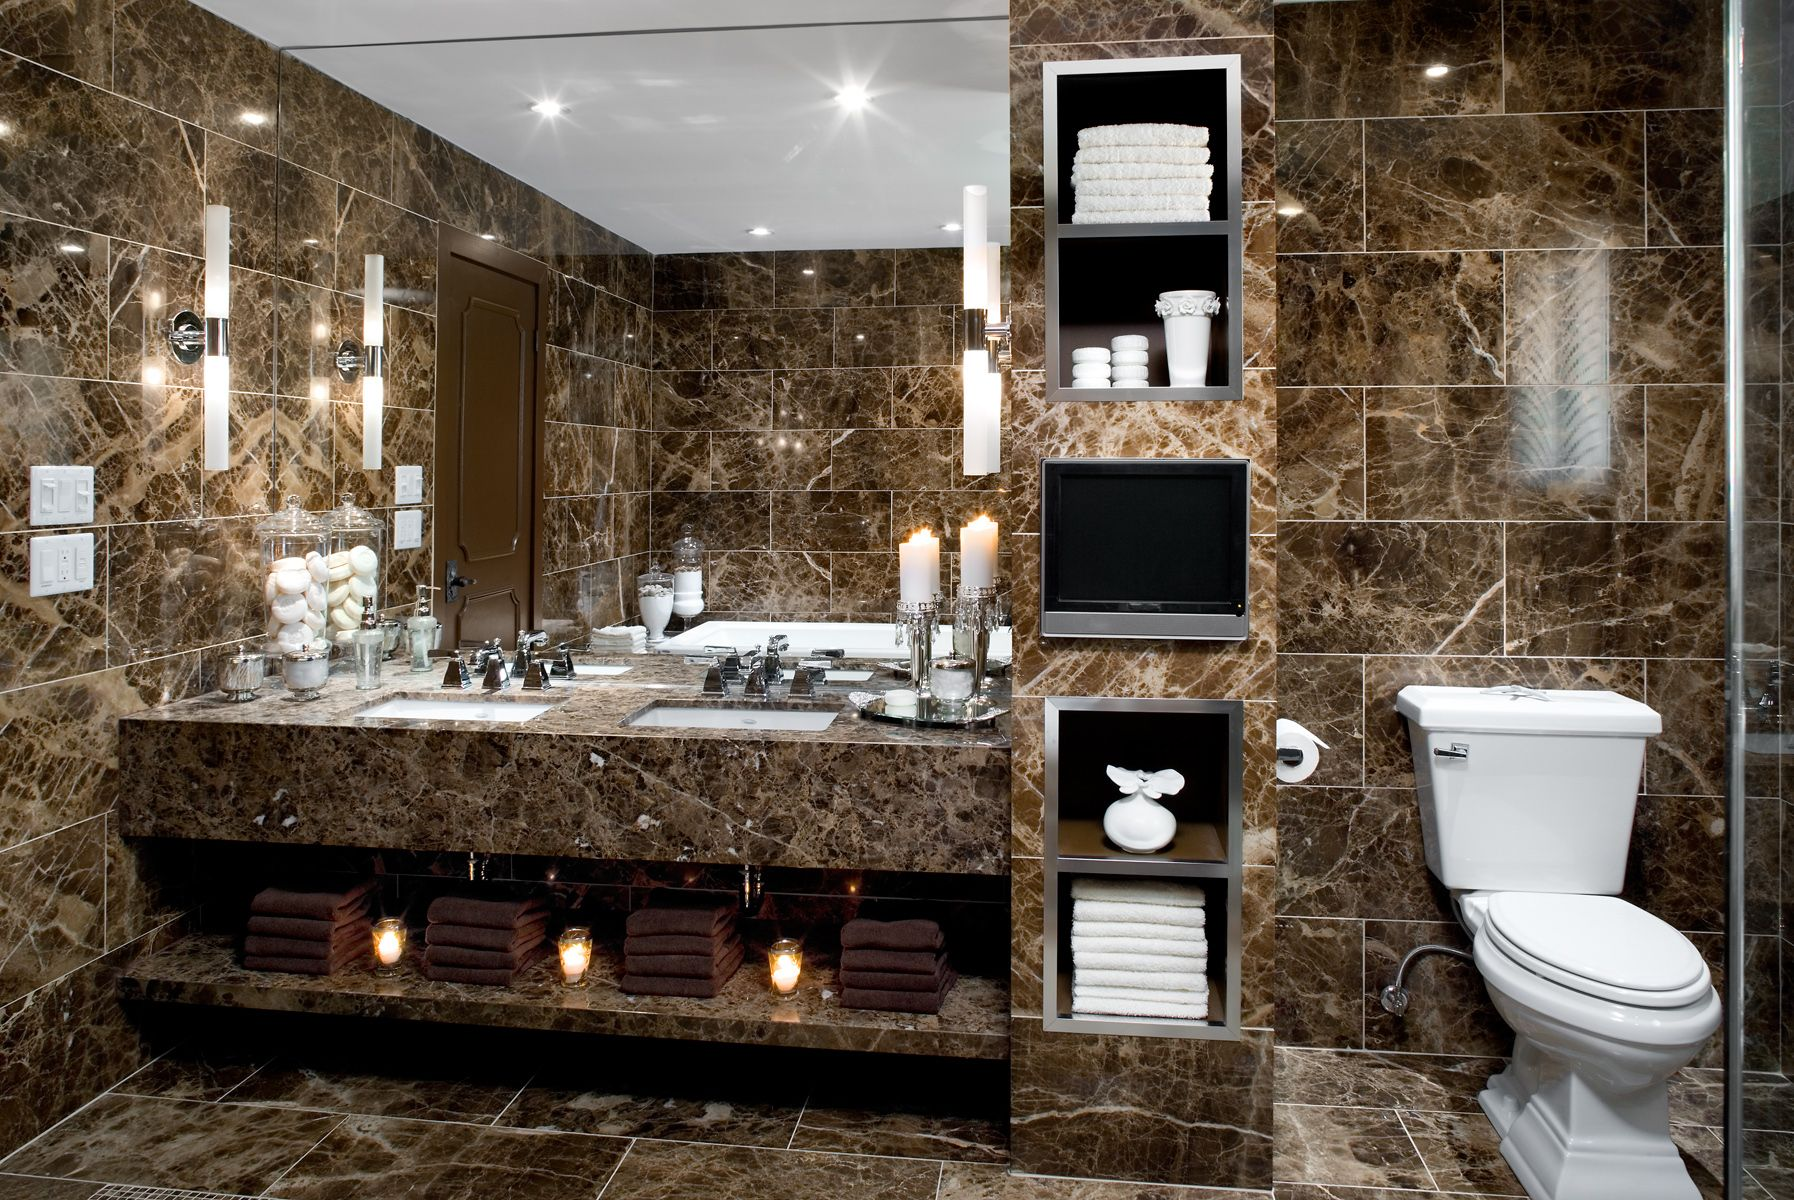 5 star hotel bathroom design